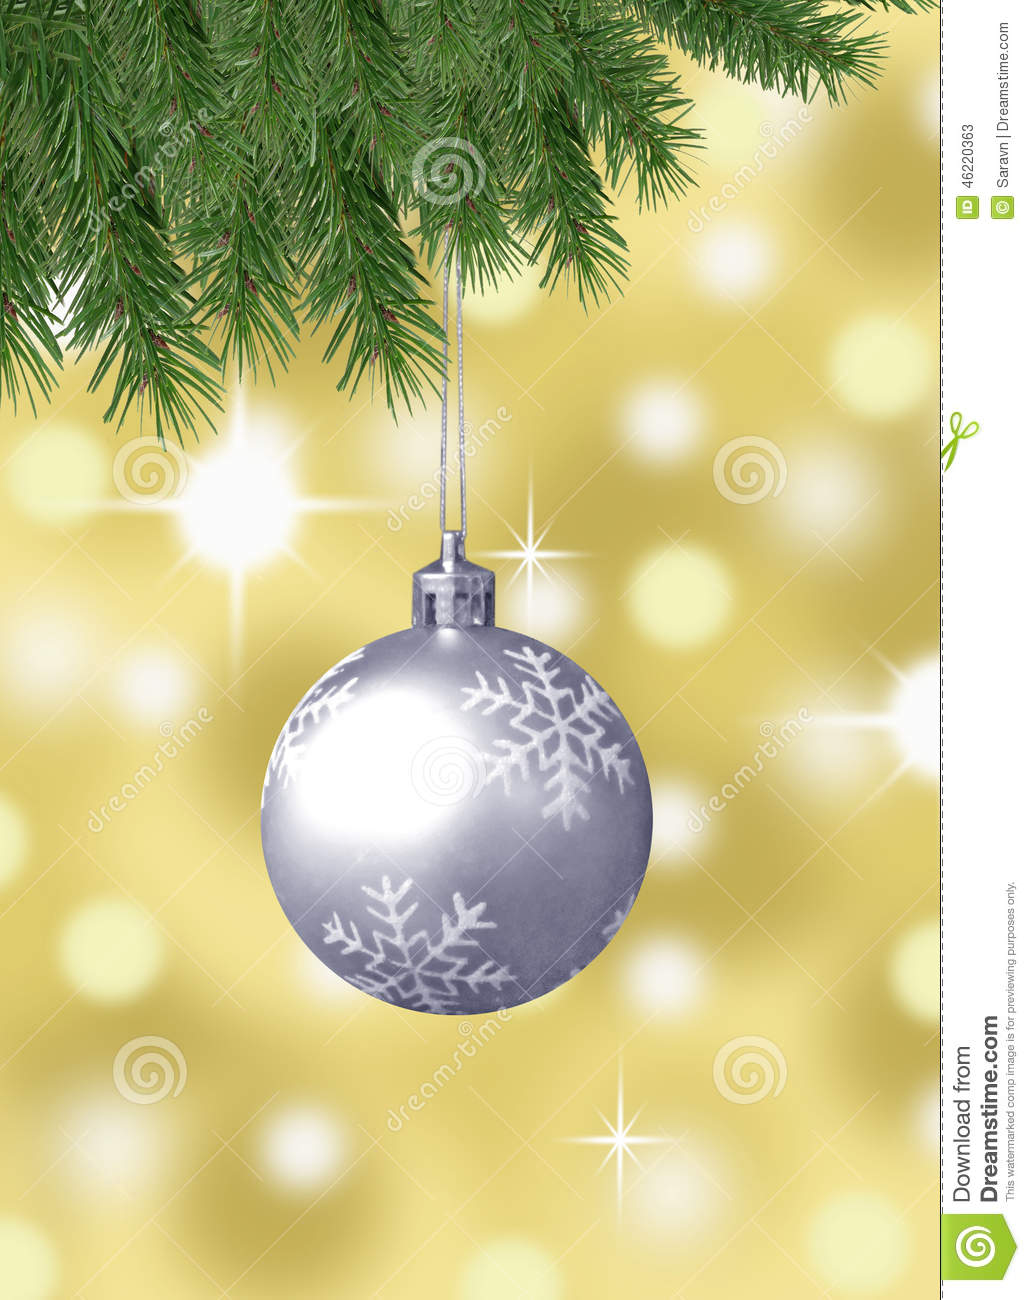 Silver snowflake christmas balls with abstract bokeh background and pine branches